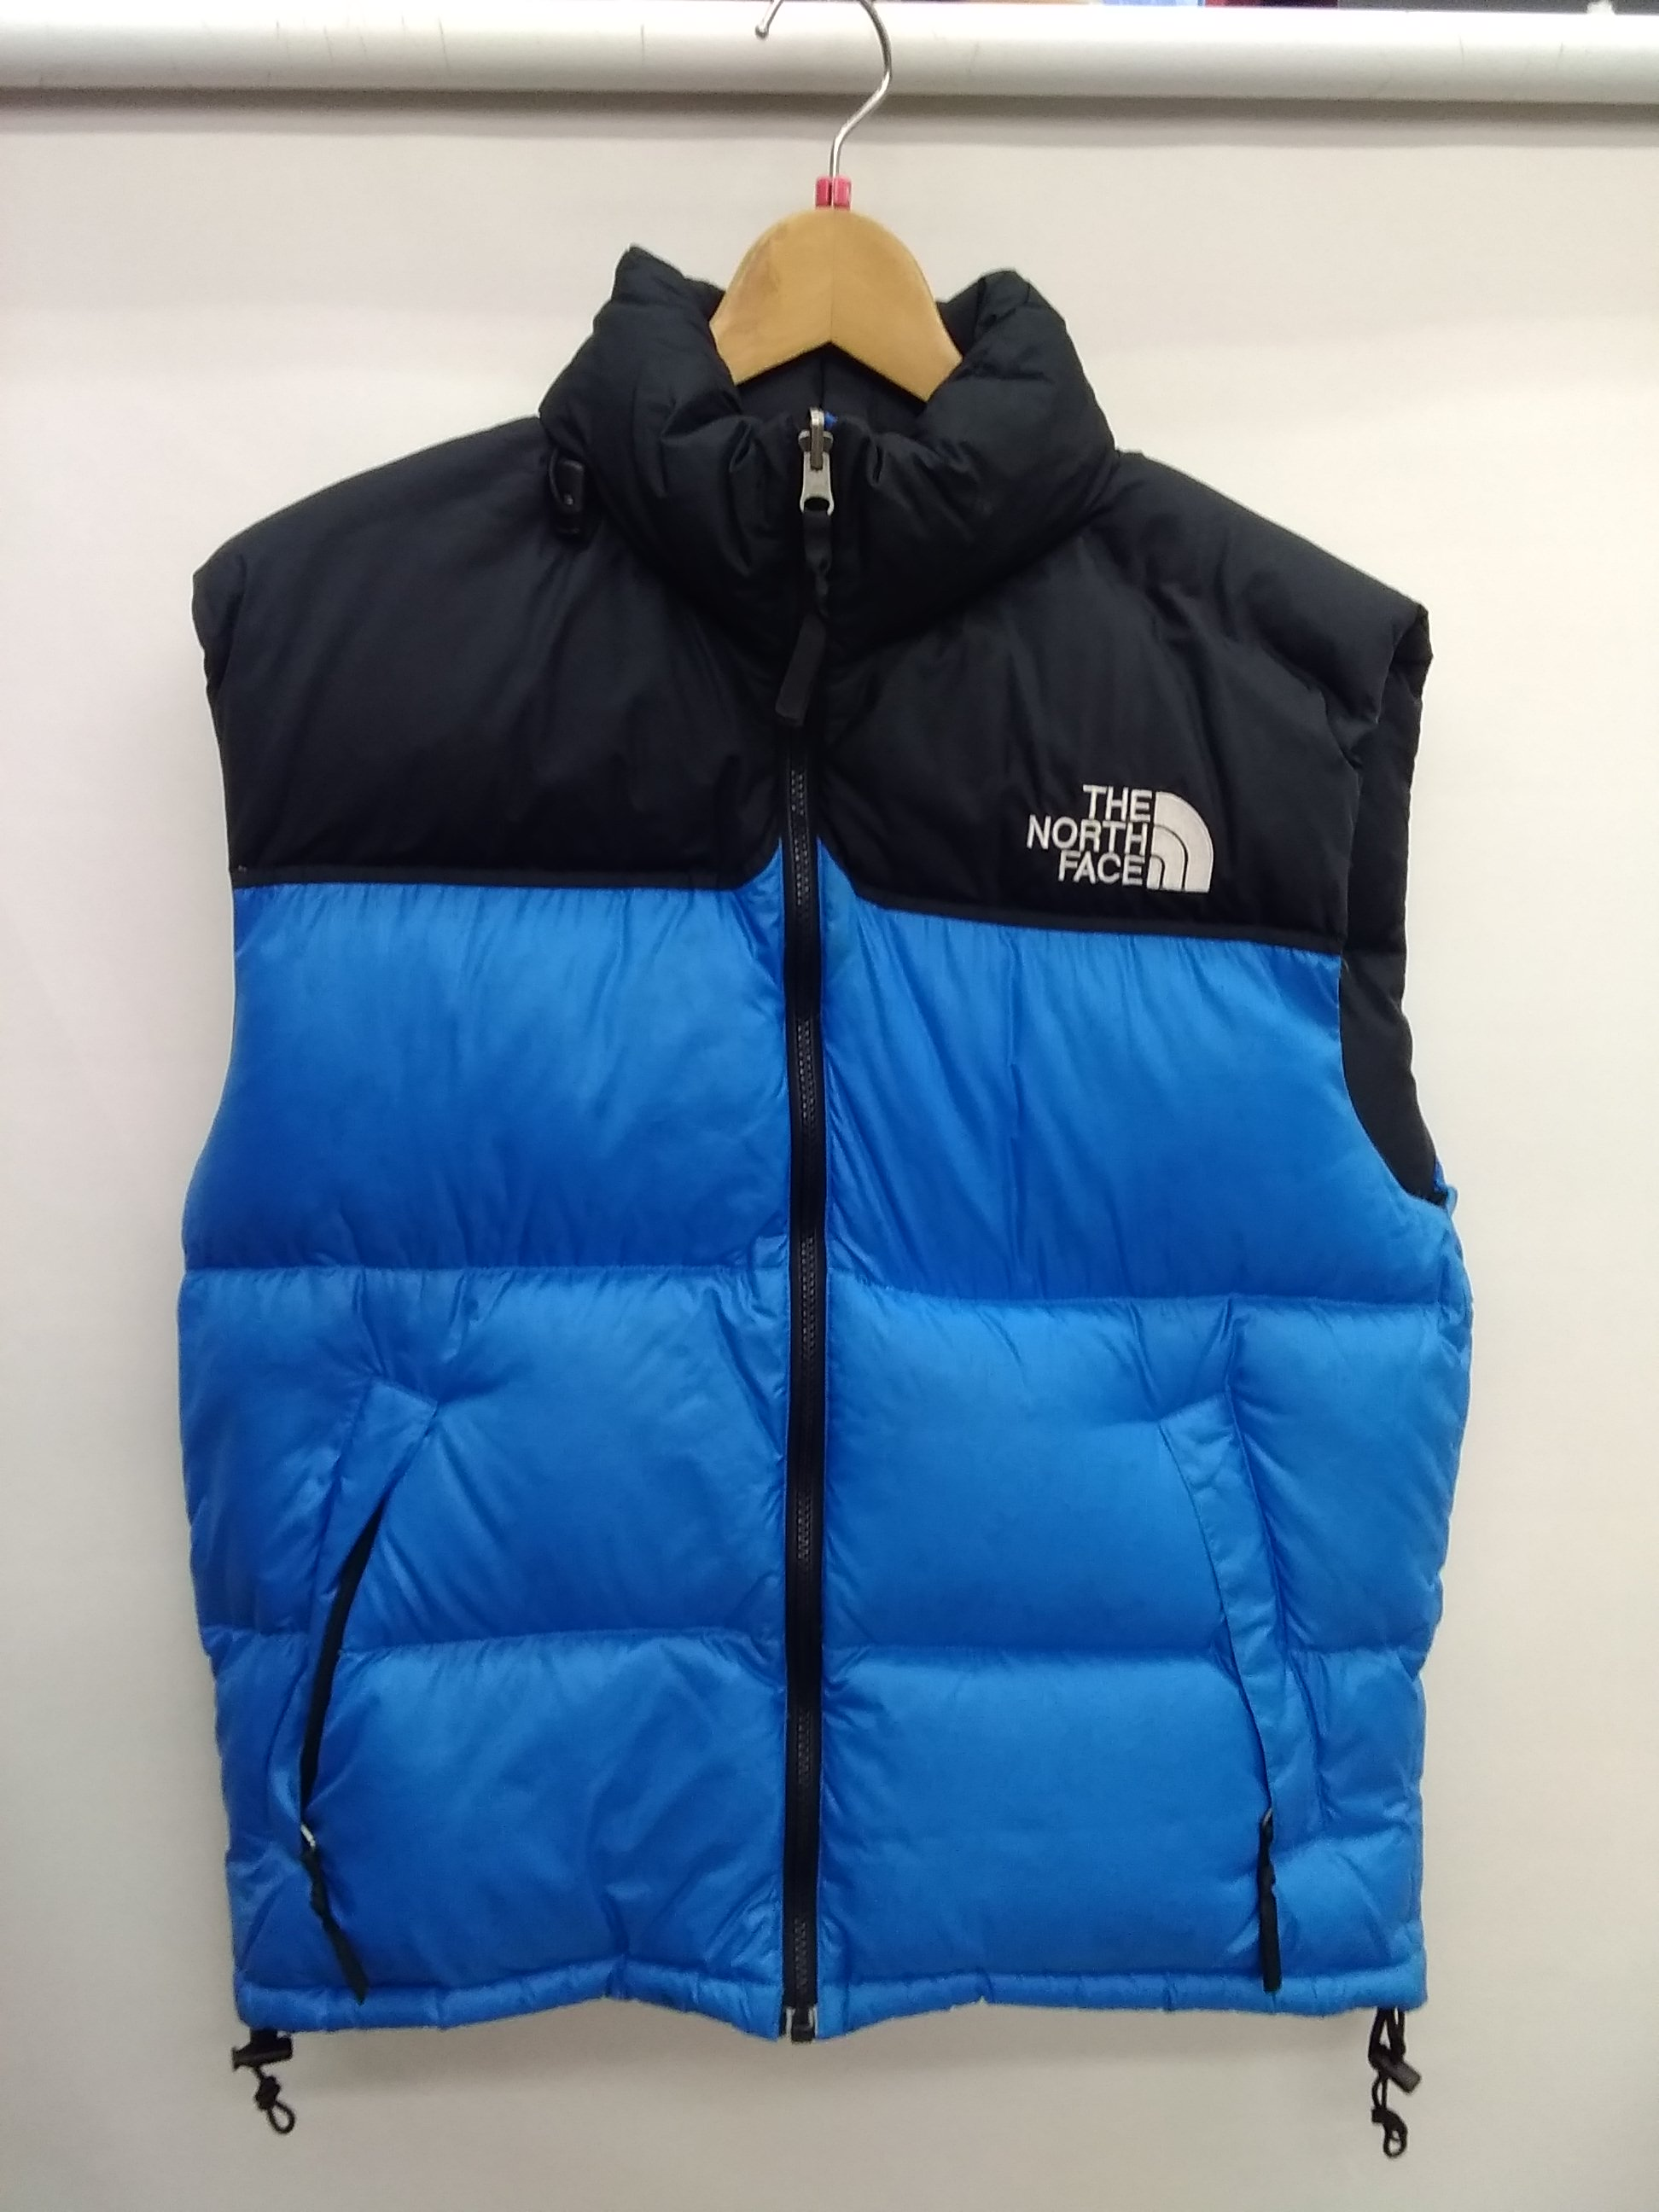 THE NORTH FACE ヌプシダウンベスト THE NORTH FACE